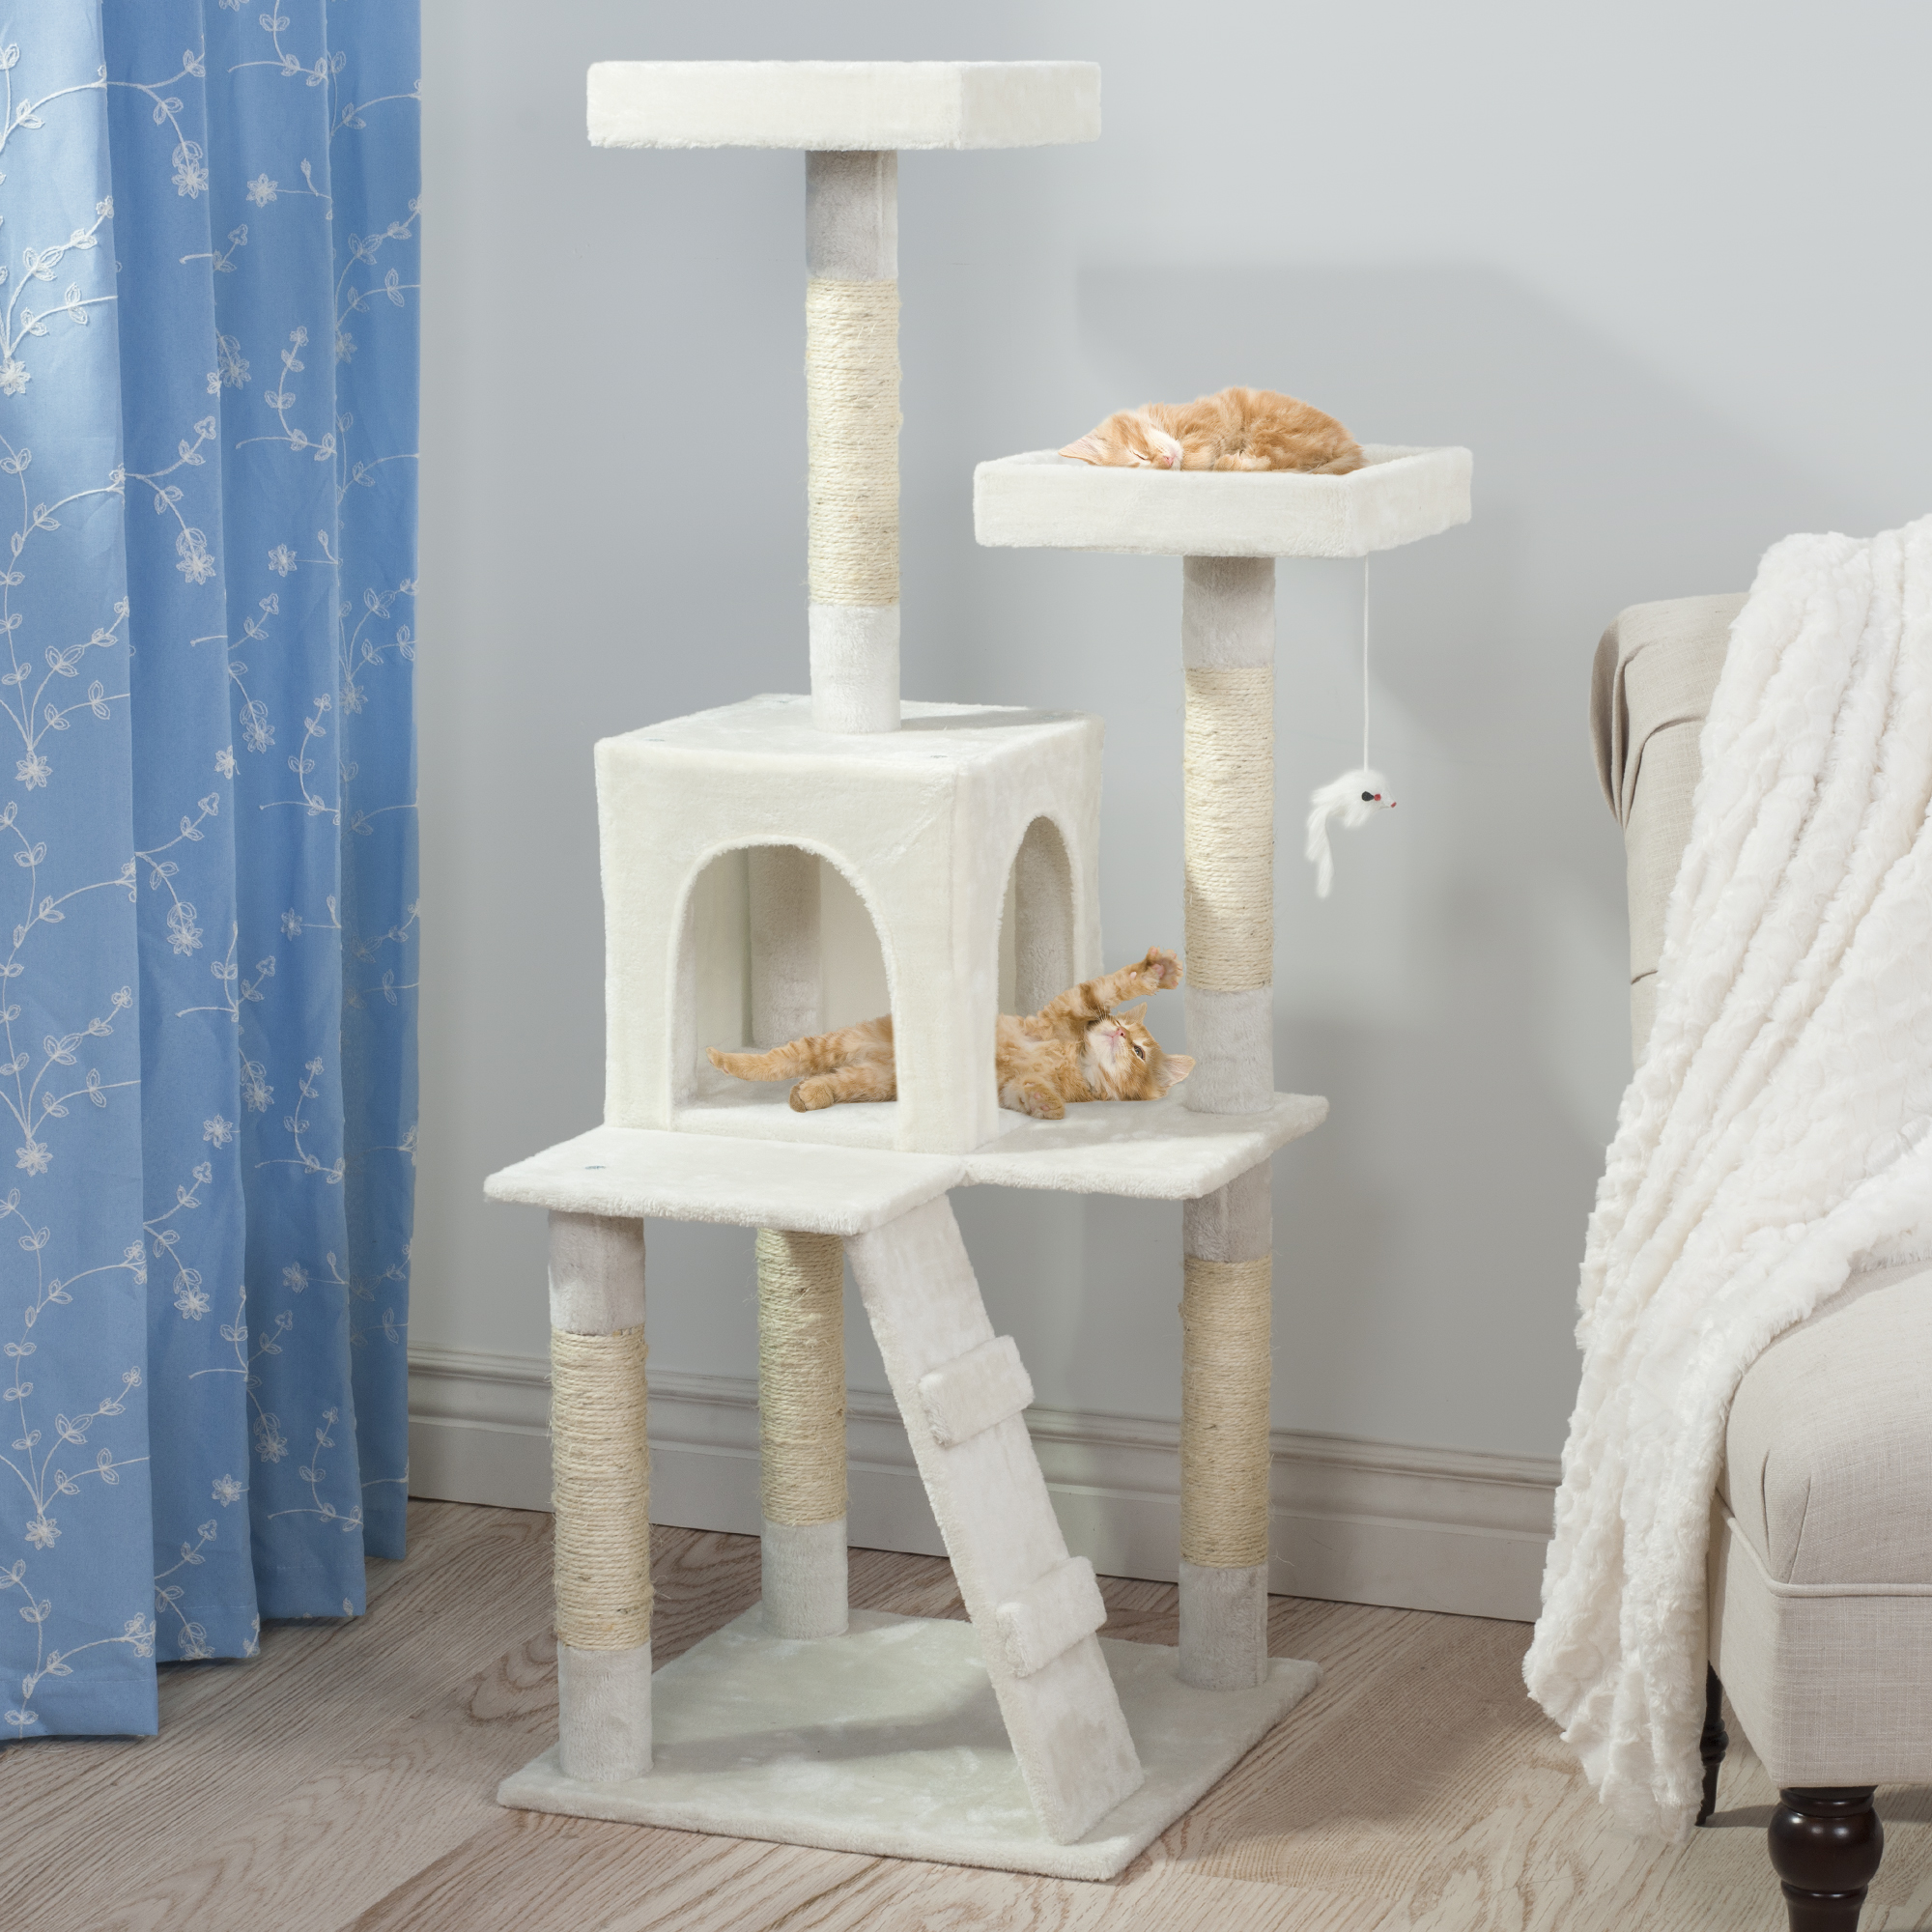 Cat Tree, Cat Condo, Penthouse Sleep and Play Cat Tree 4' tall White by Trademark Global LLC